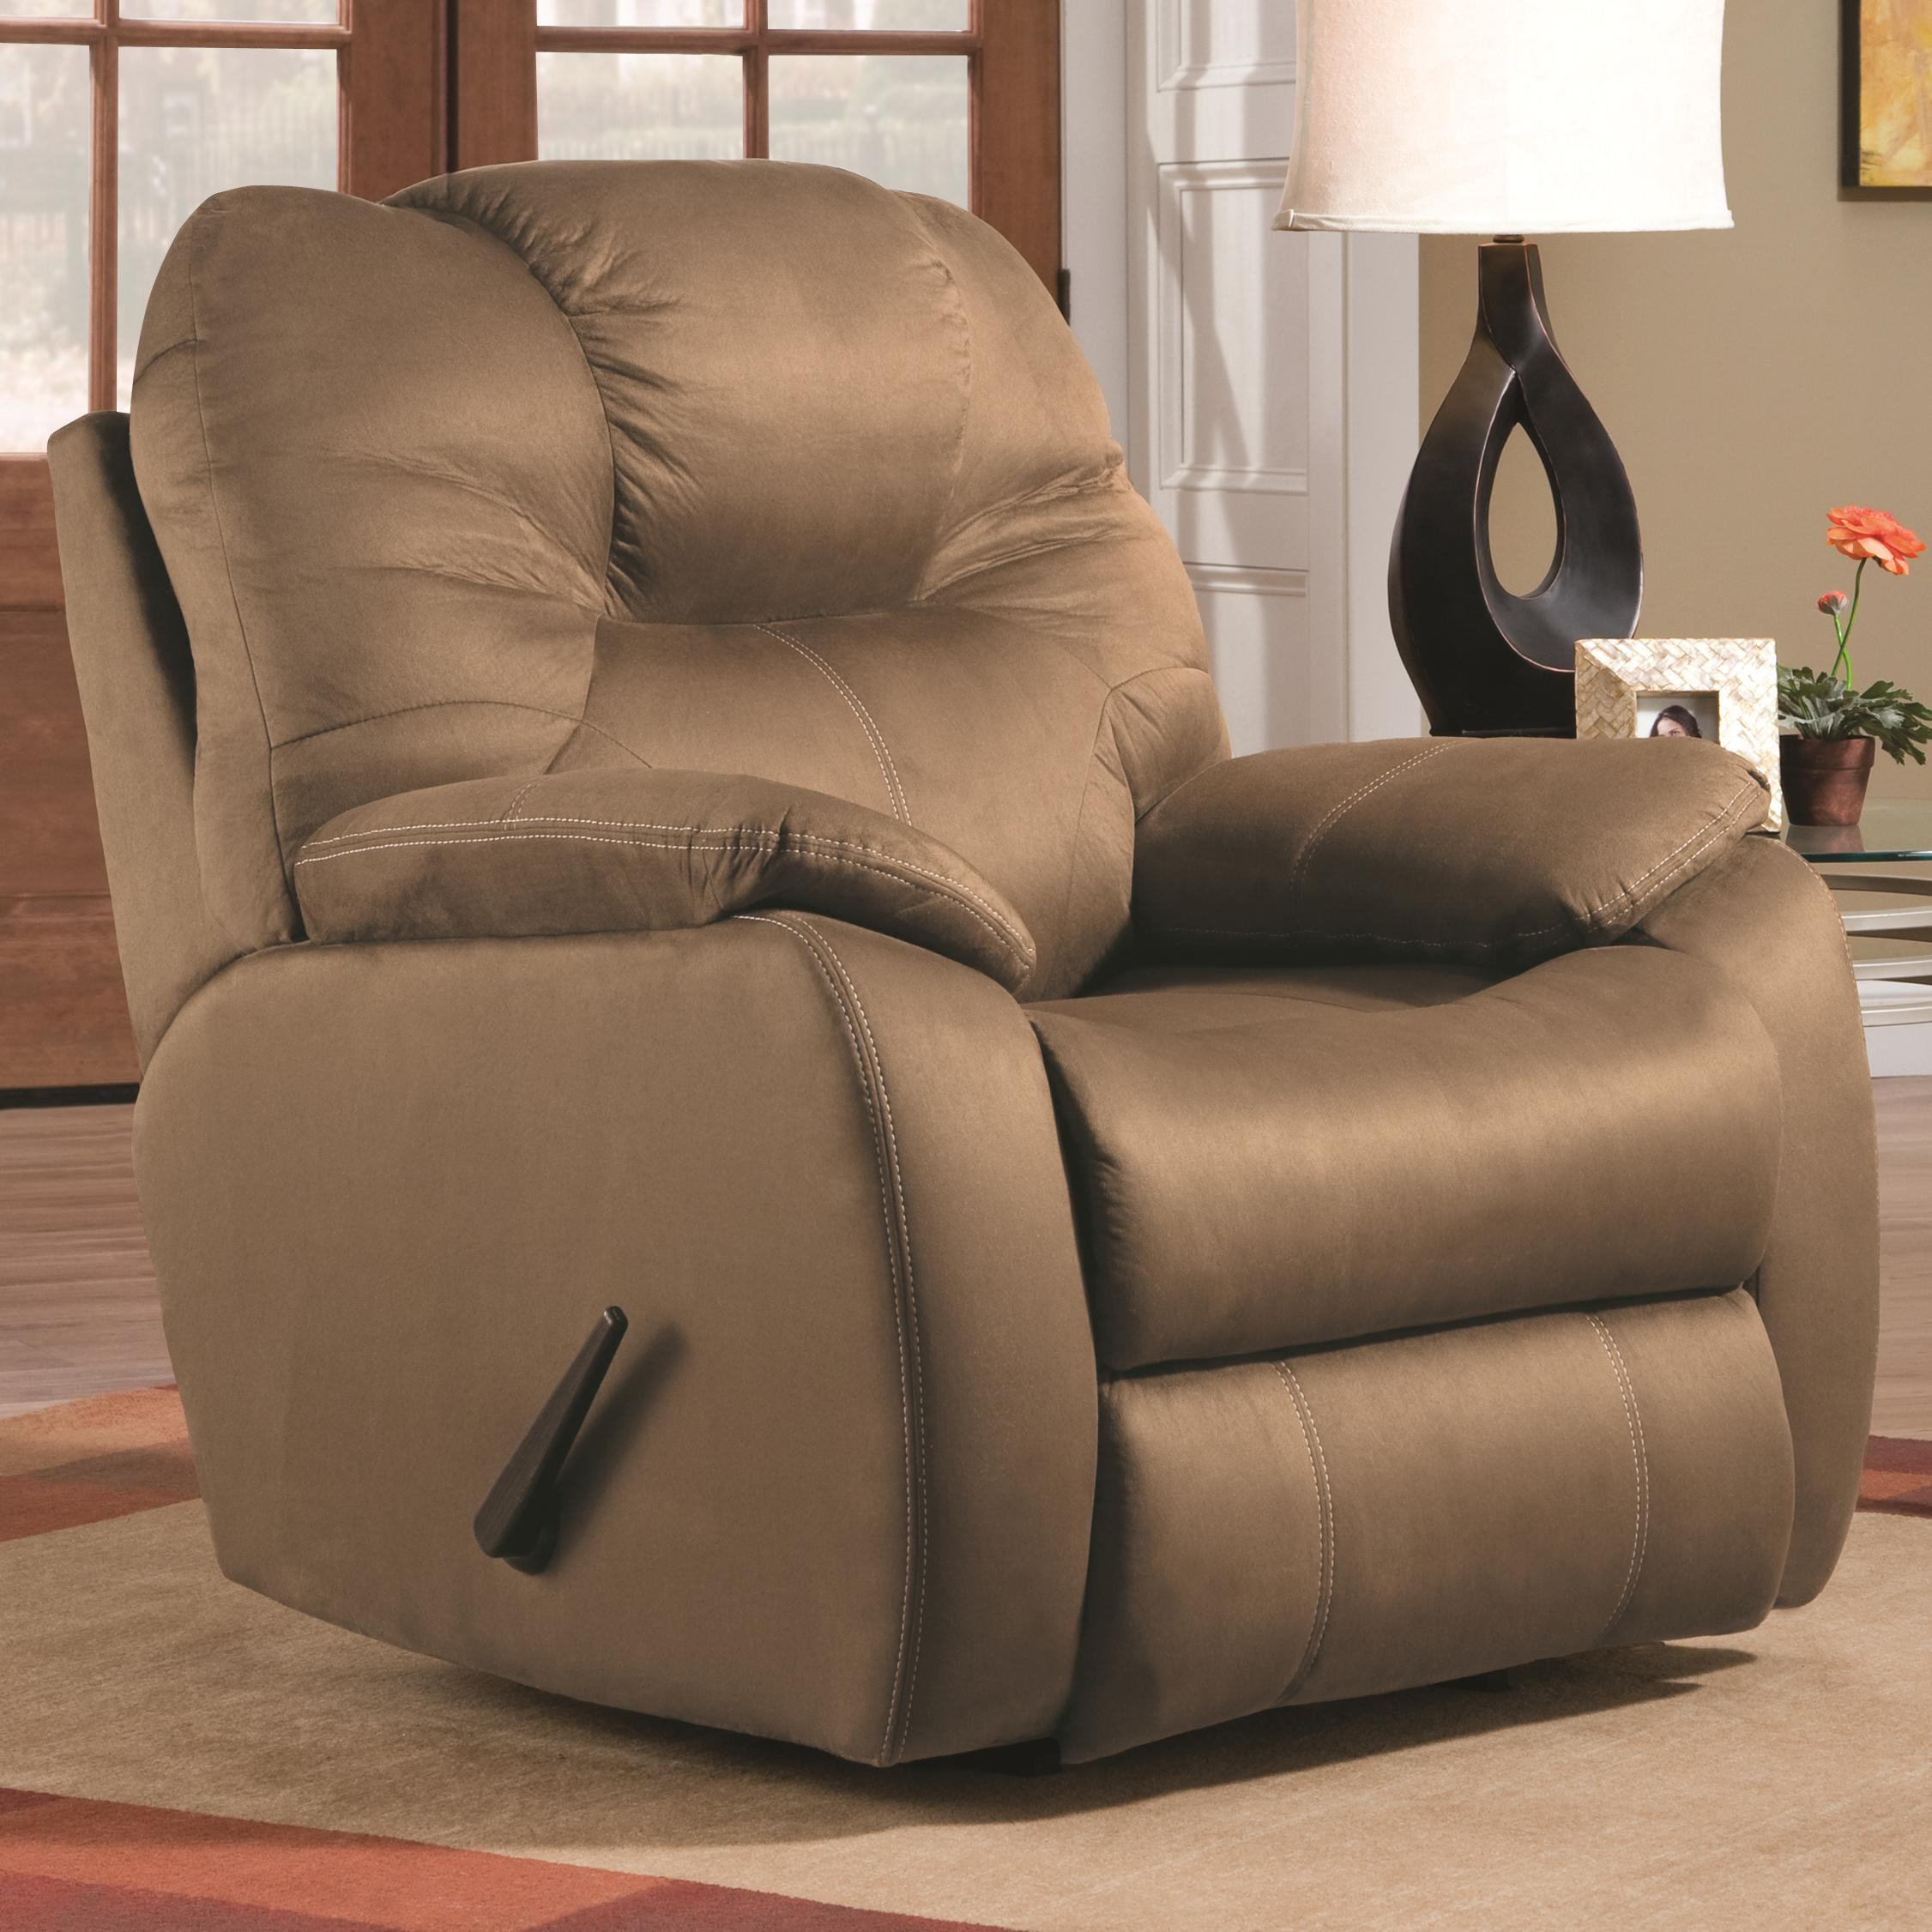 Avalon Wall Hugger Recliner by Southern Motion at Rooms and Rest